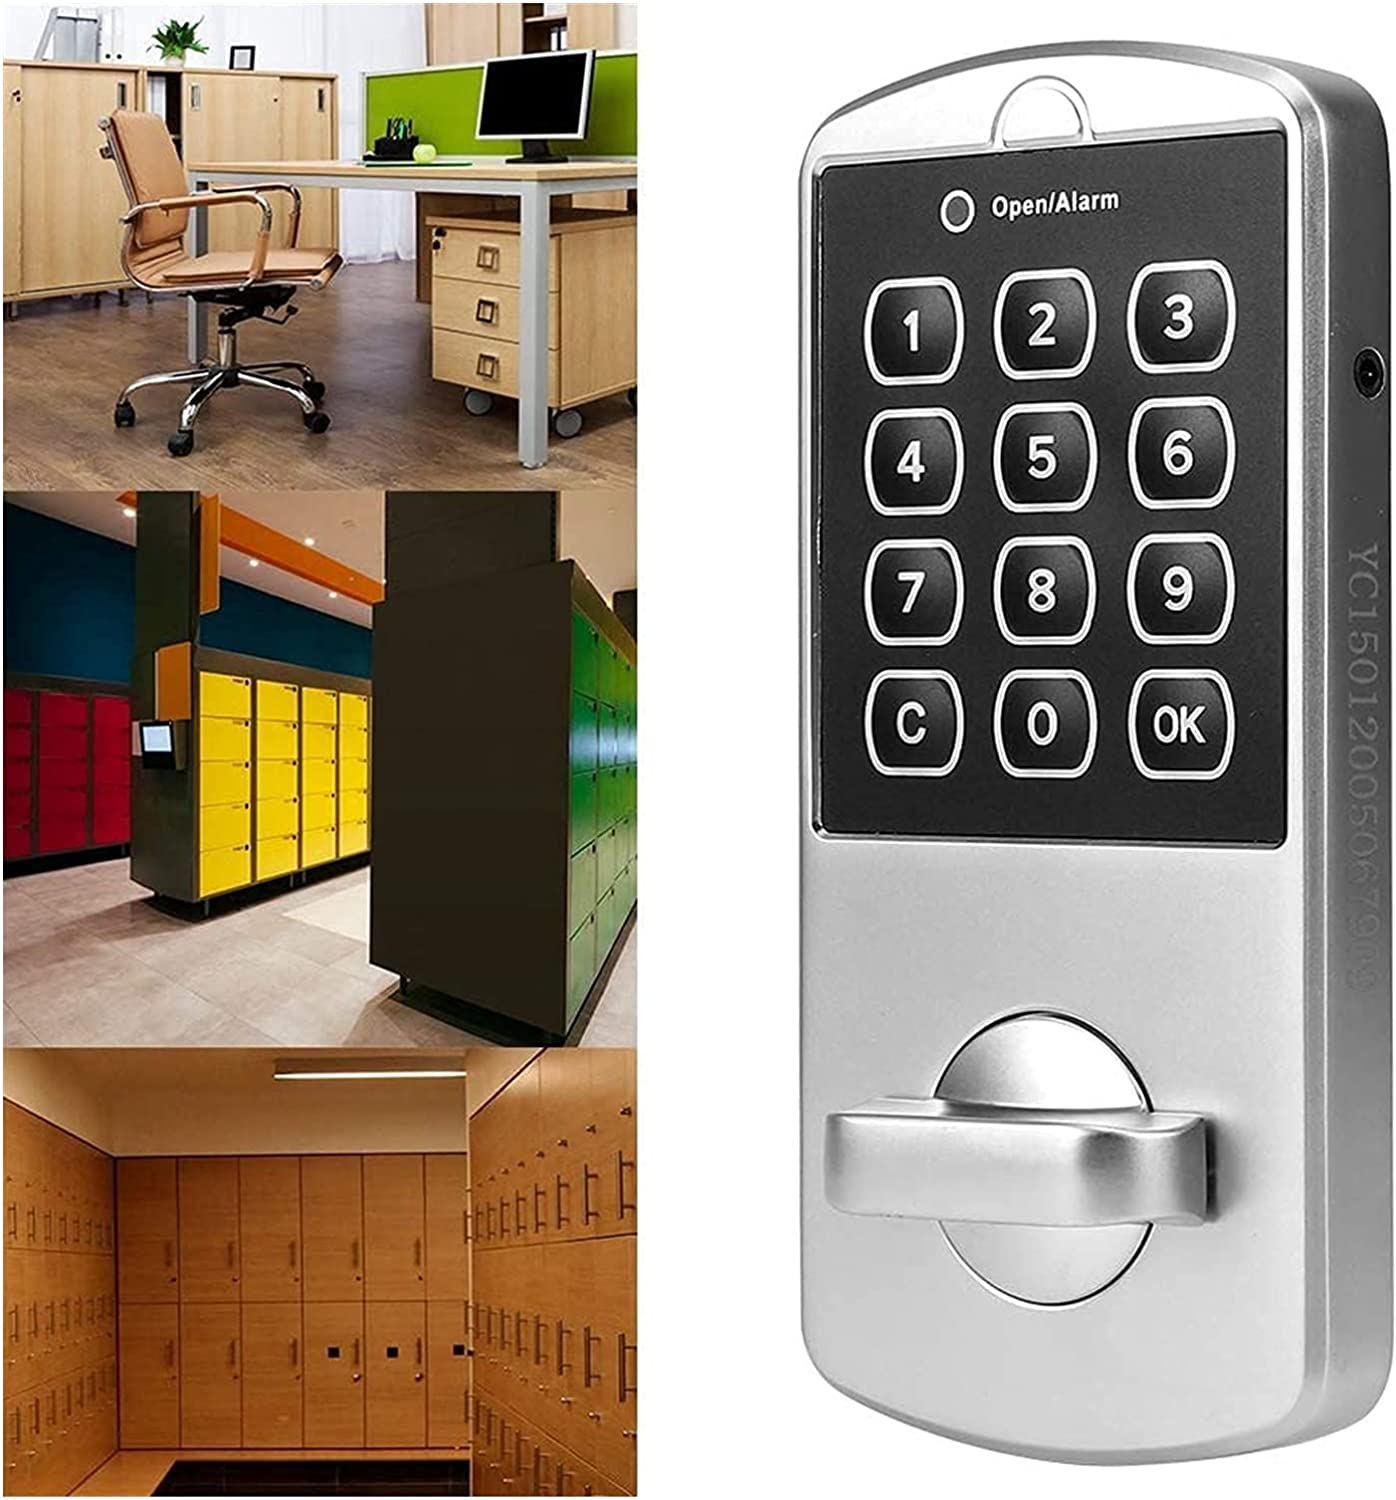 LIBAI Electronic Keyless Password Codes File Limited time for free shipping Passwo Lock All items in the store Cabinet